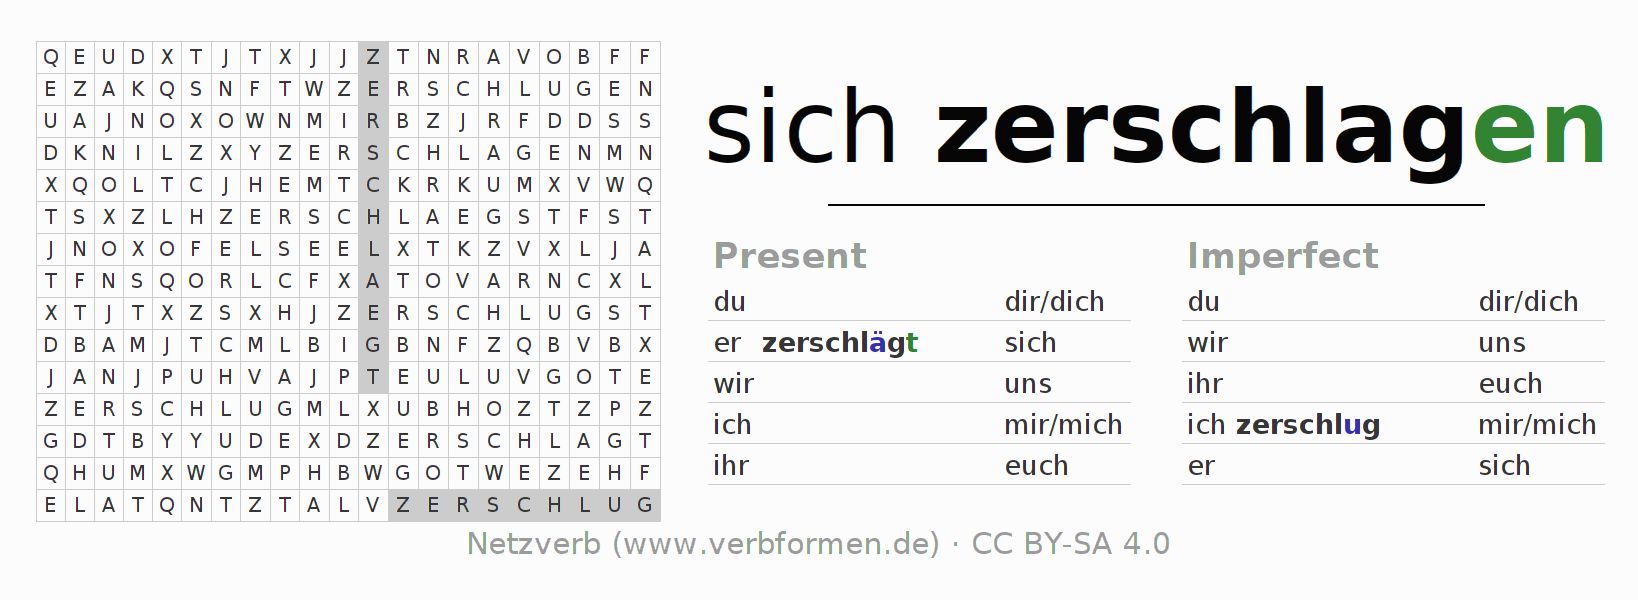 Word search puzzle for the conjugation of the verb sich zerschlagen